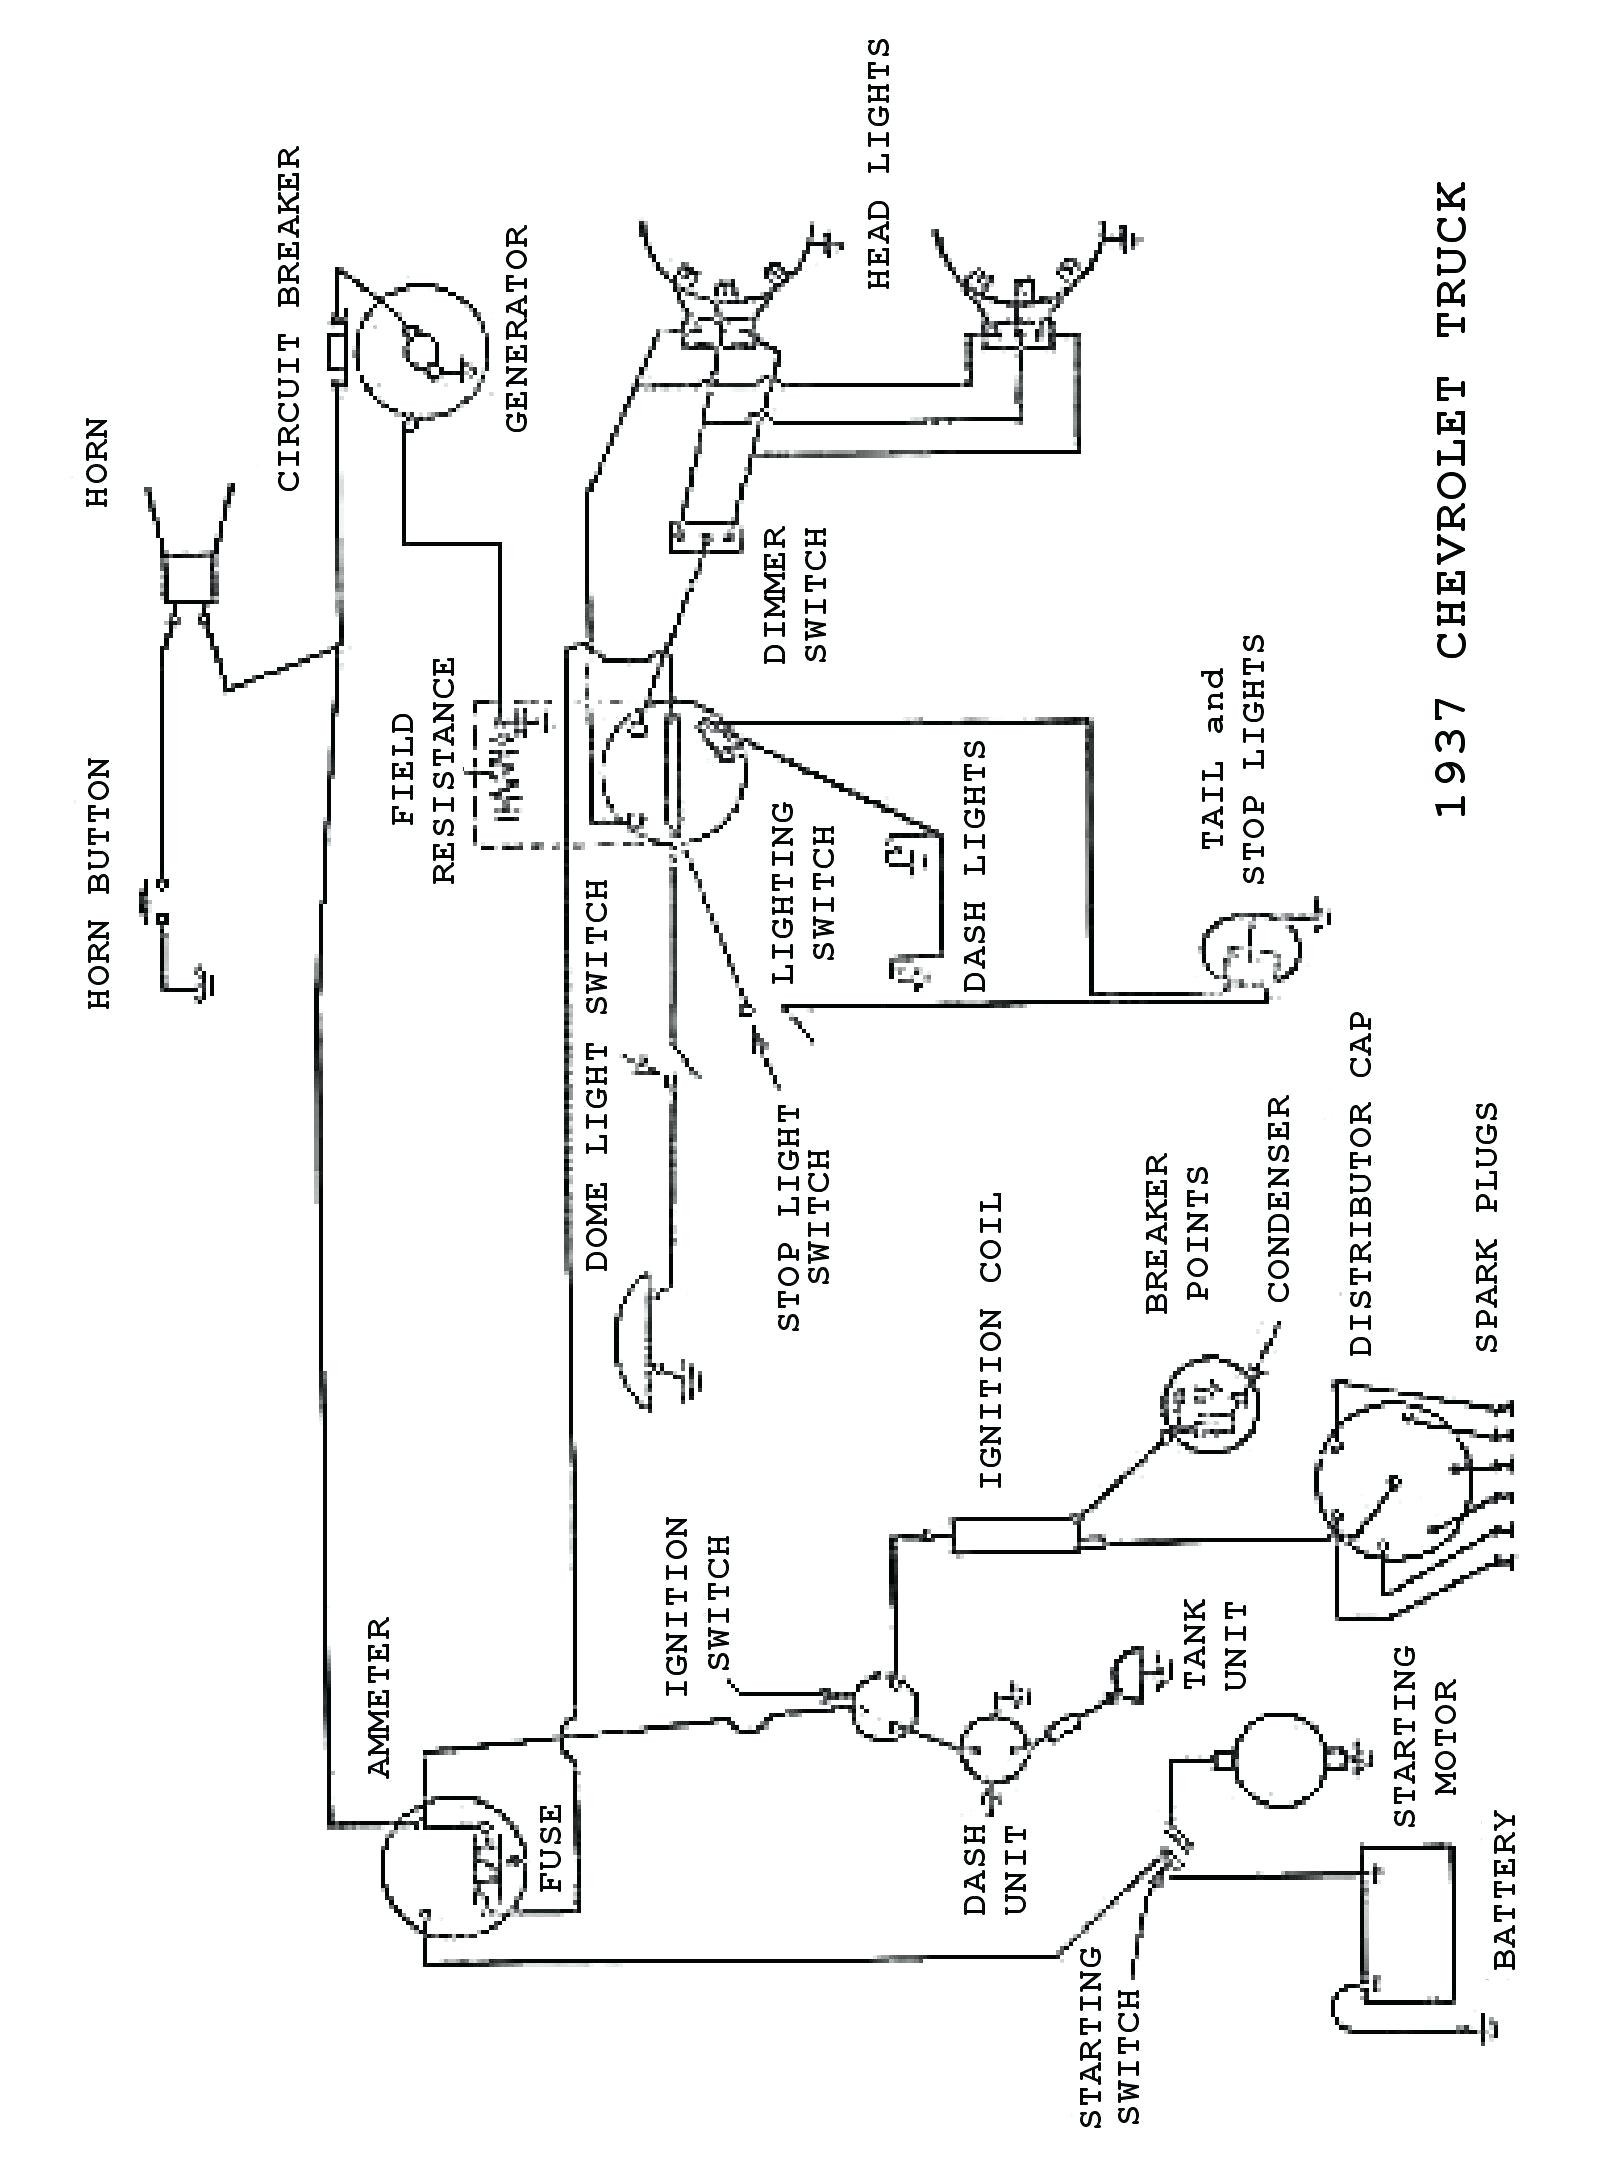 hight resolution of john deere 4020 24 volt wiring diagram free picture wiring libraryjohn deere 4020 wiring diagram gas